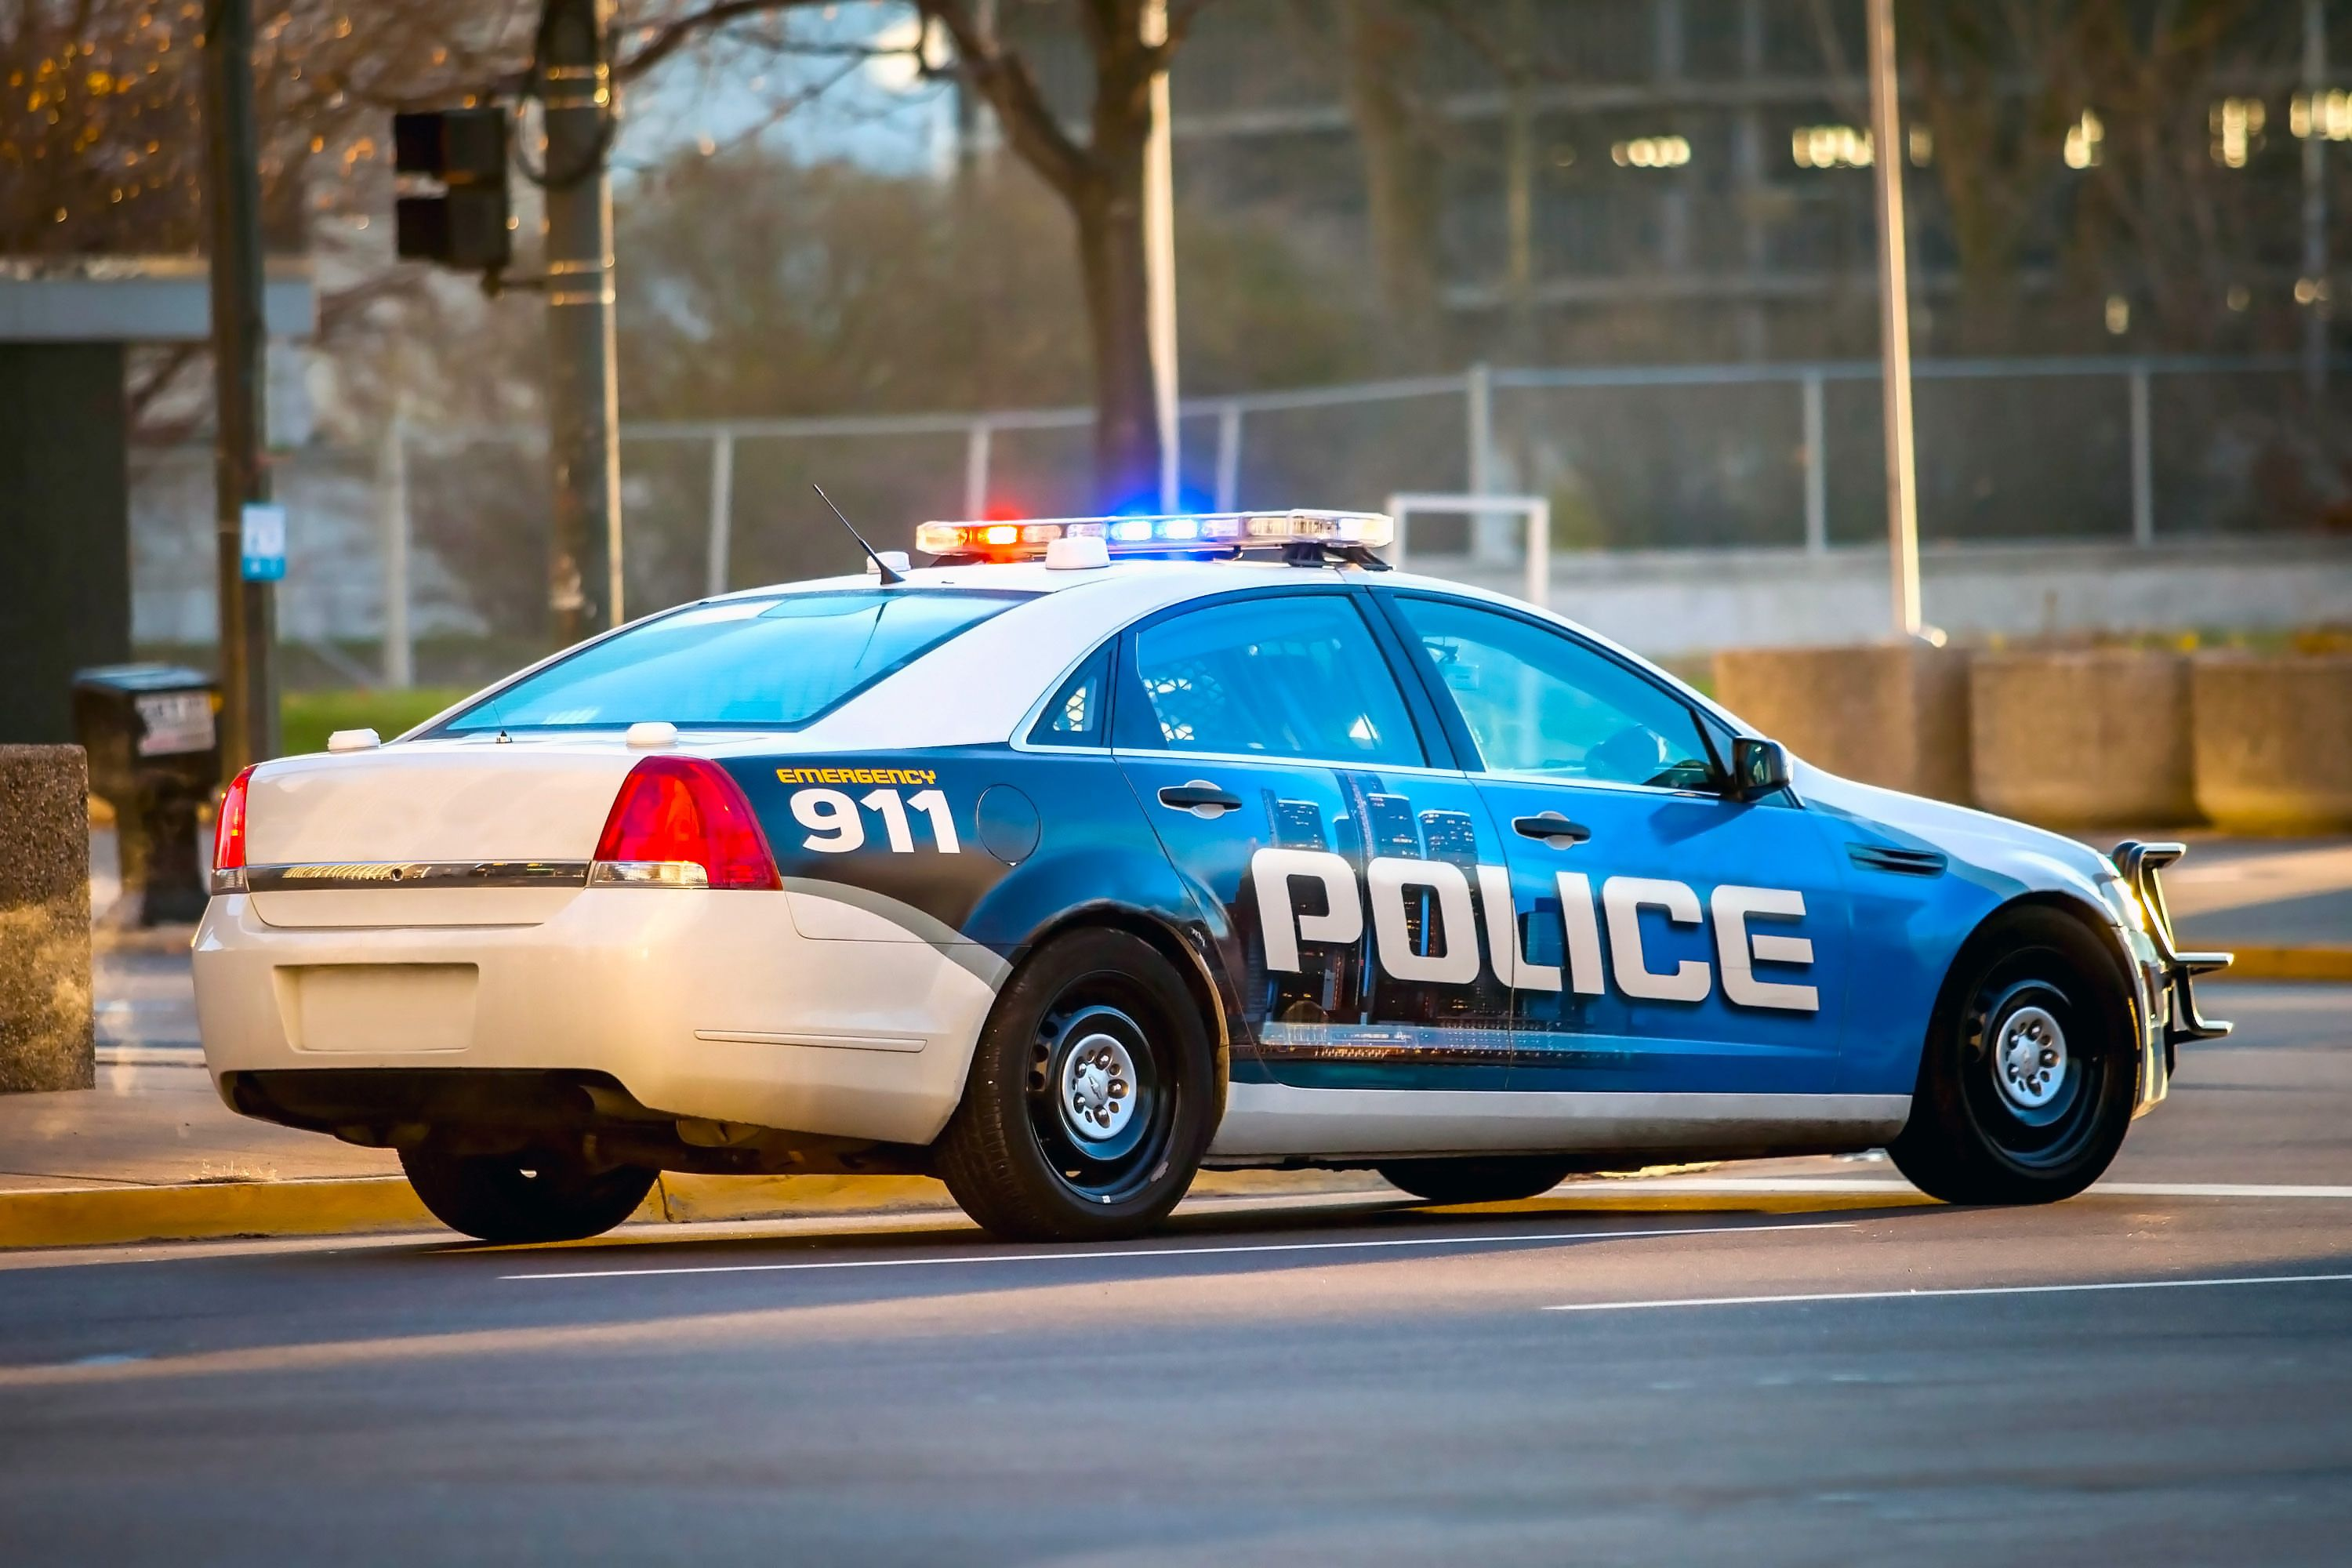 A police car driving down the street.   Photo: Getty Images